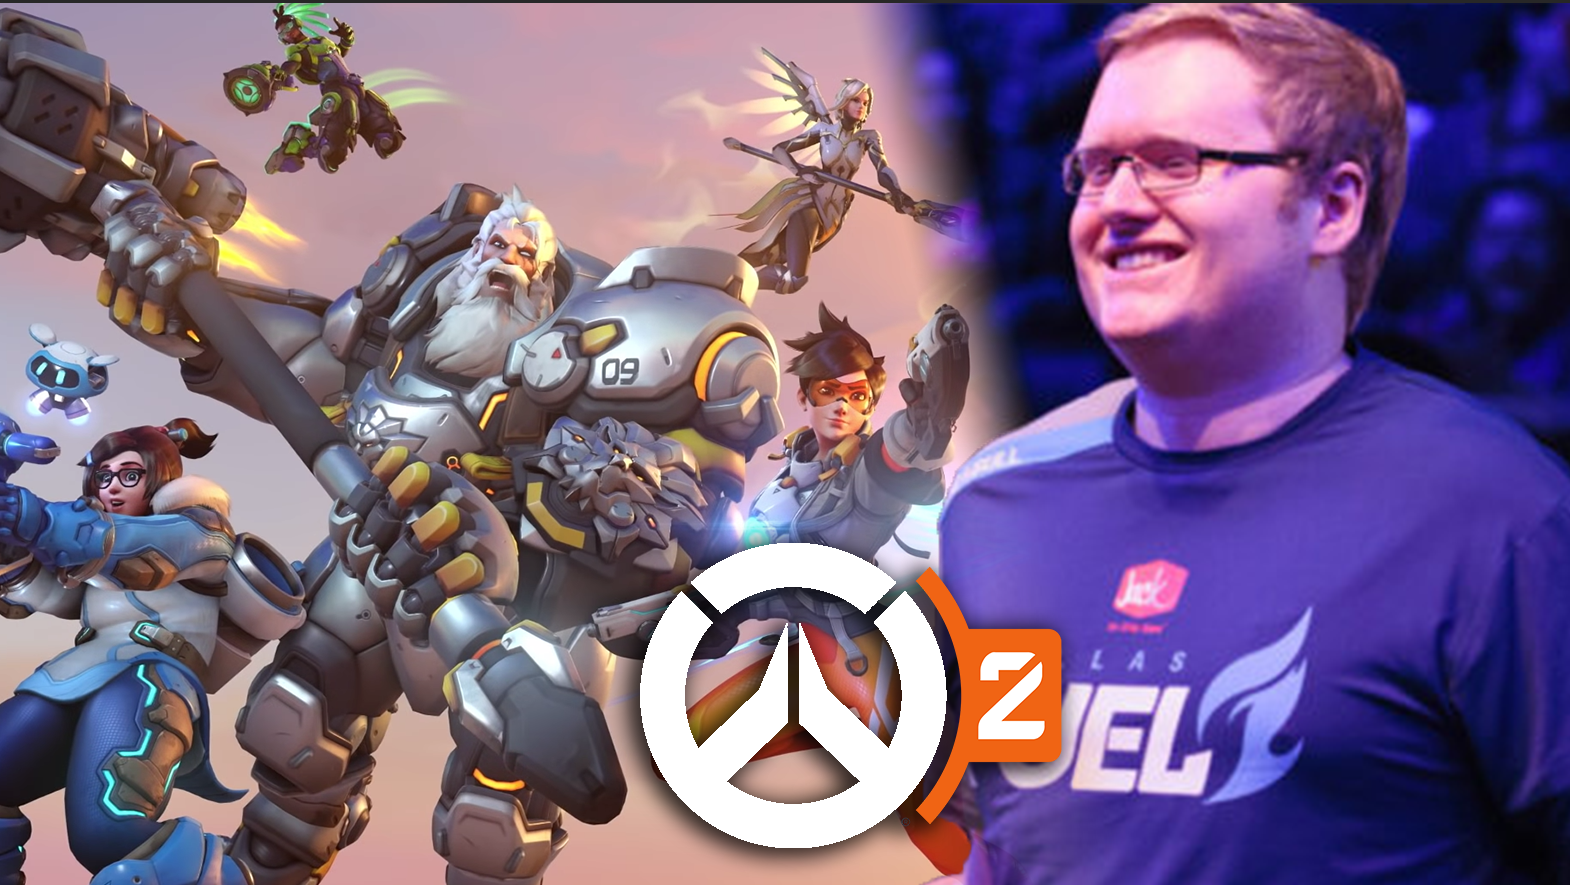 Overwatch 2 poster / Seagull walking through Overwatch League crowd